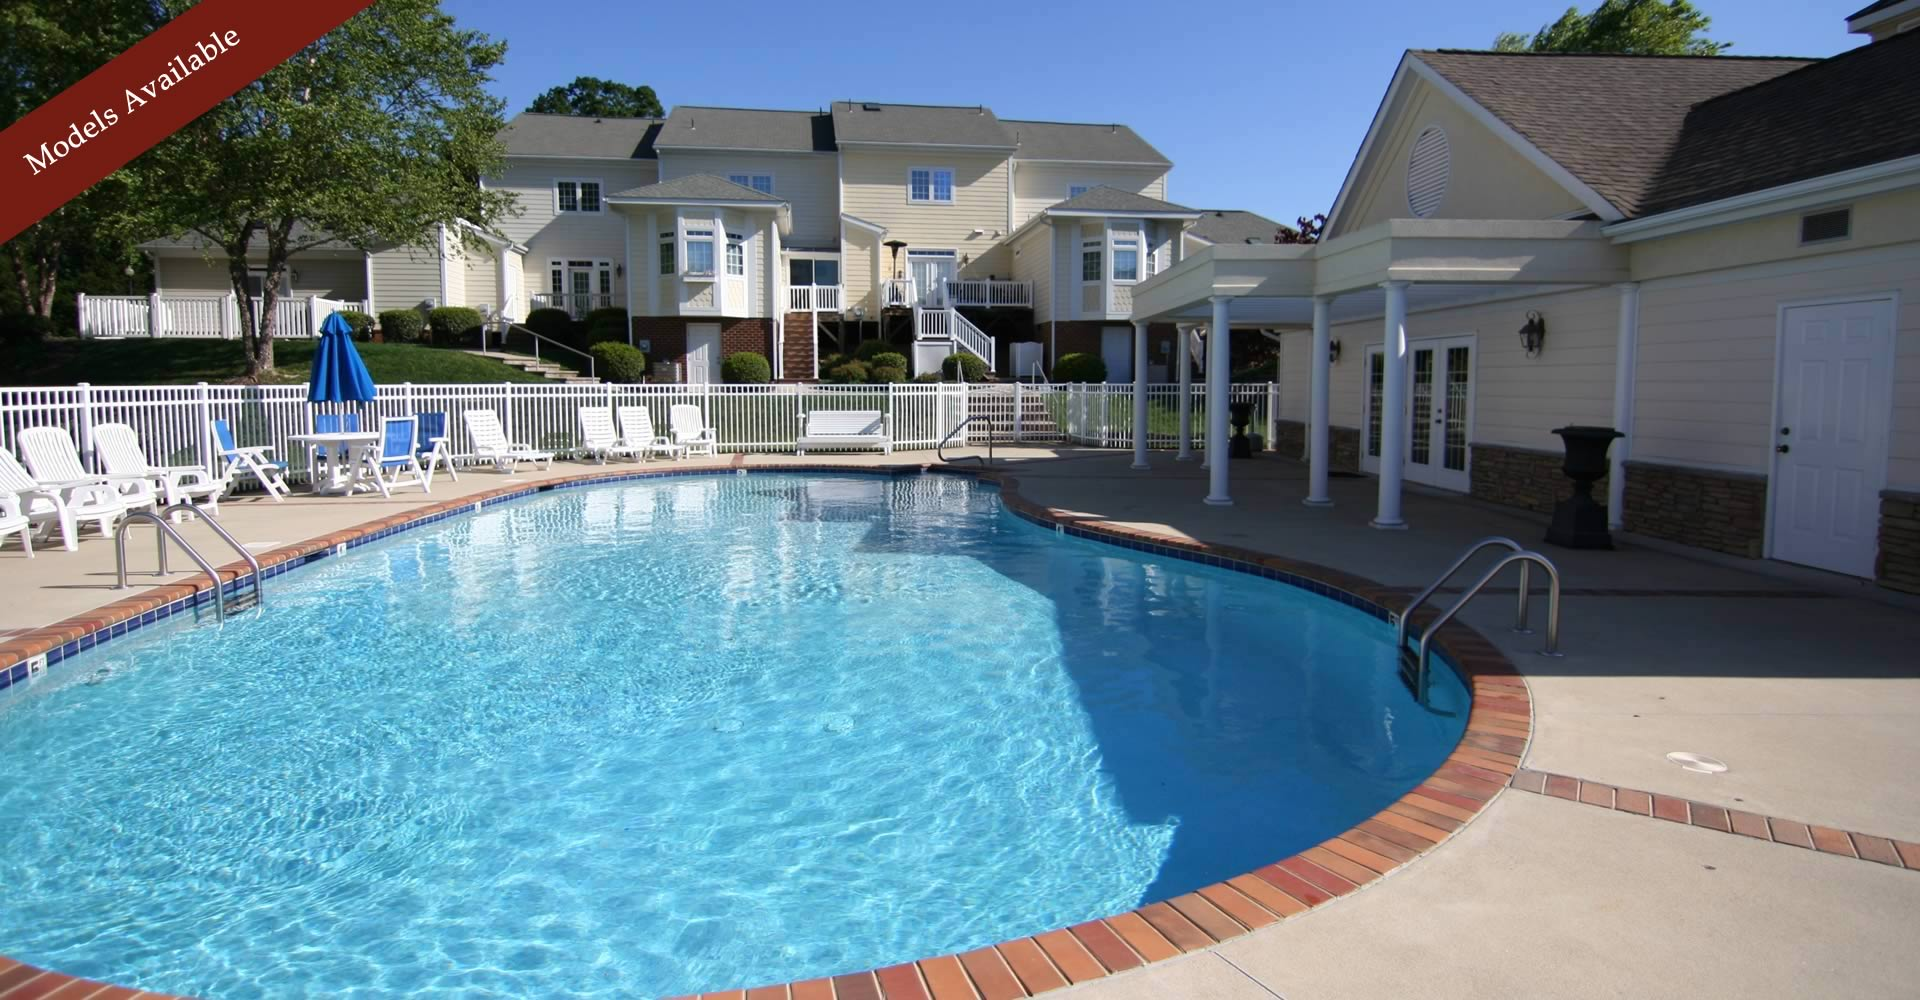 Luxury townhome community's swimming pool and clubhouse for entertaining